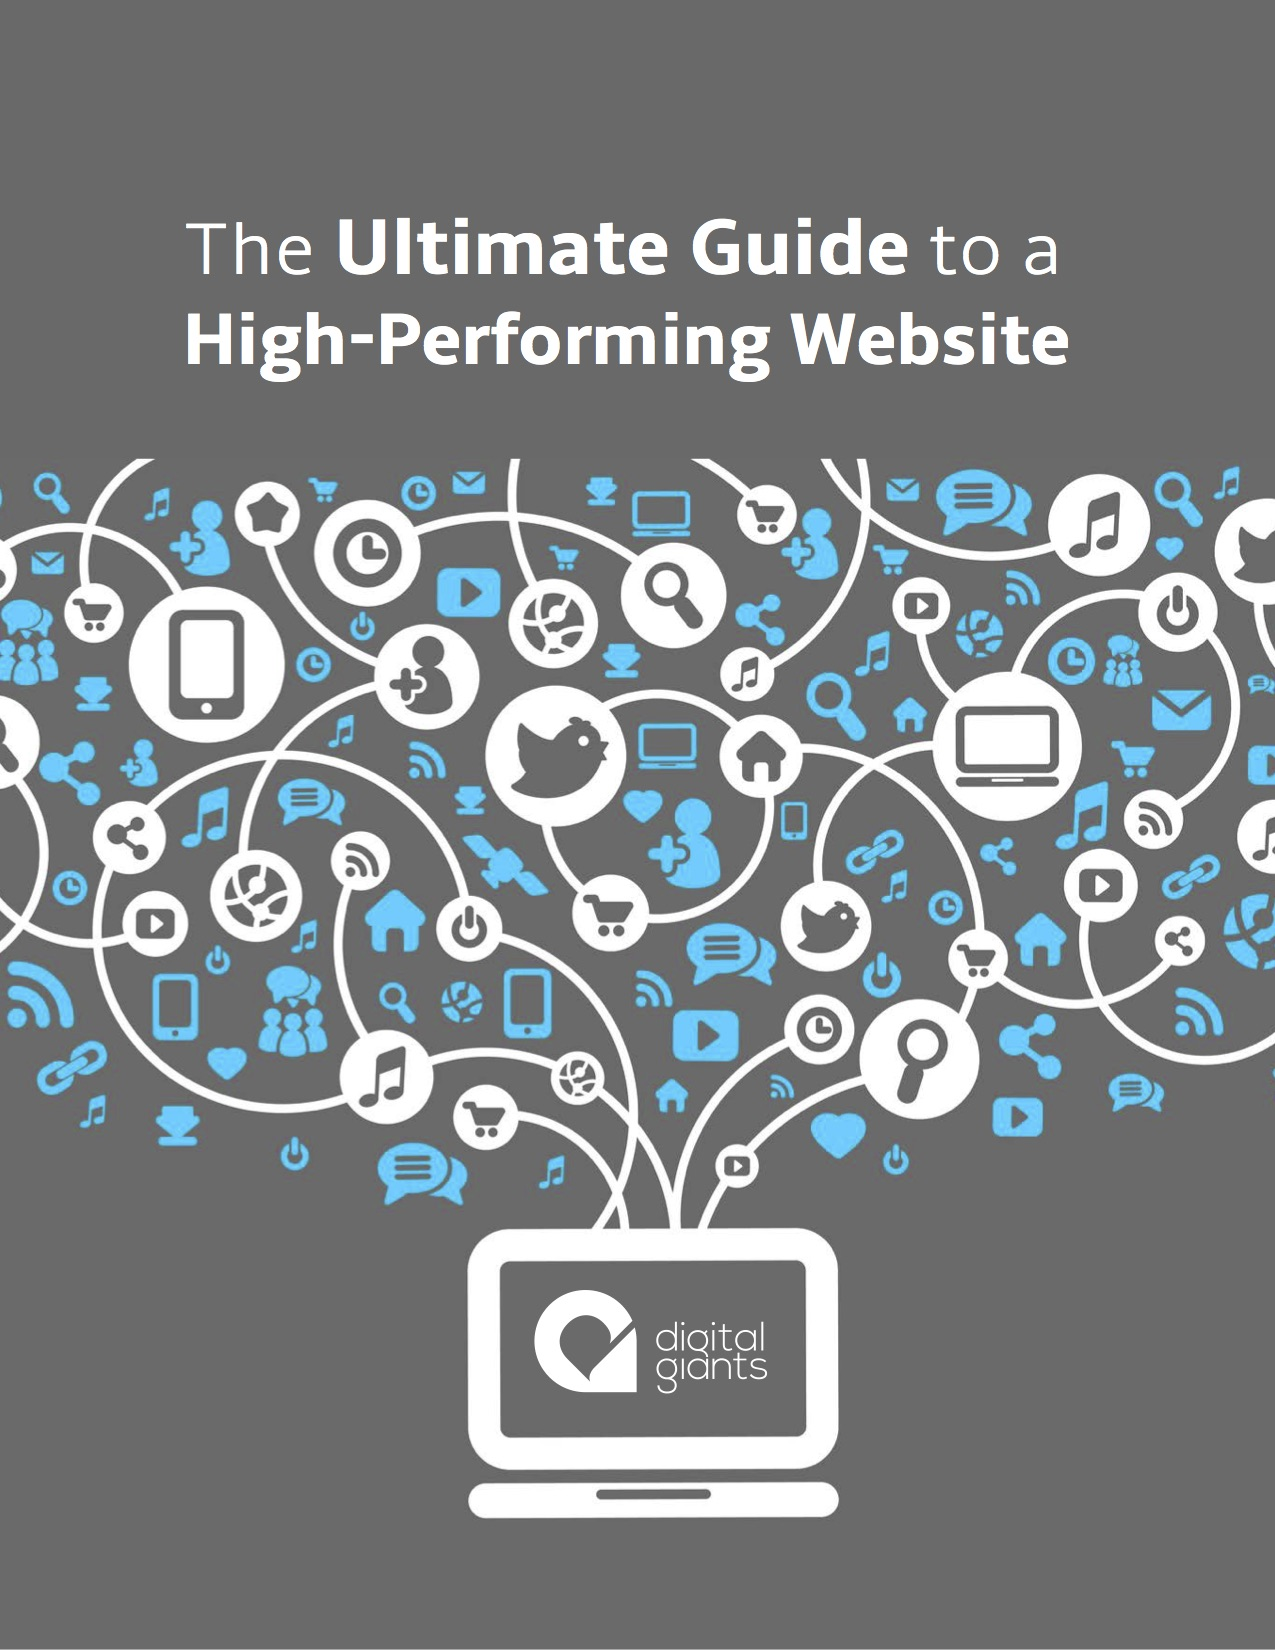 The Ultimate Guide to a High-Performing Website